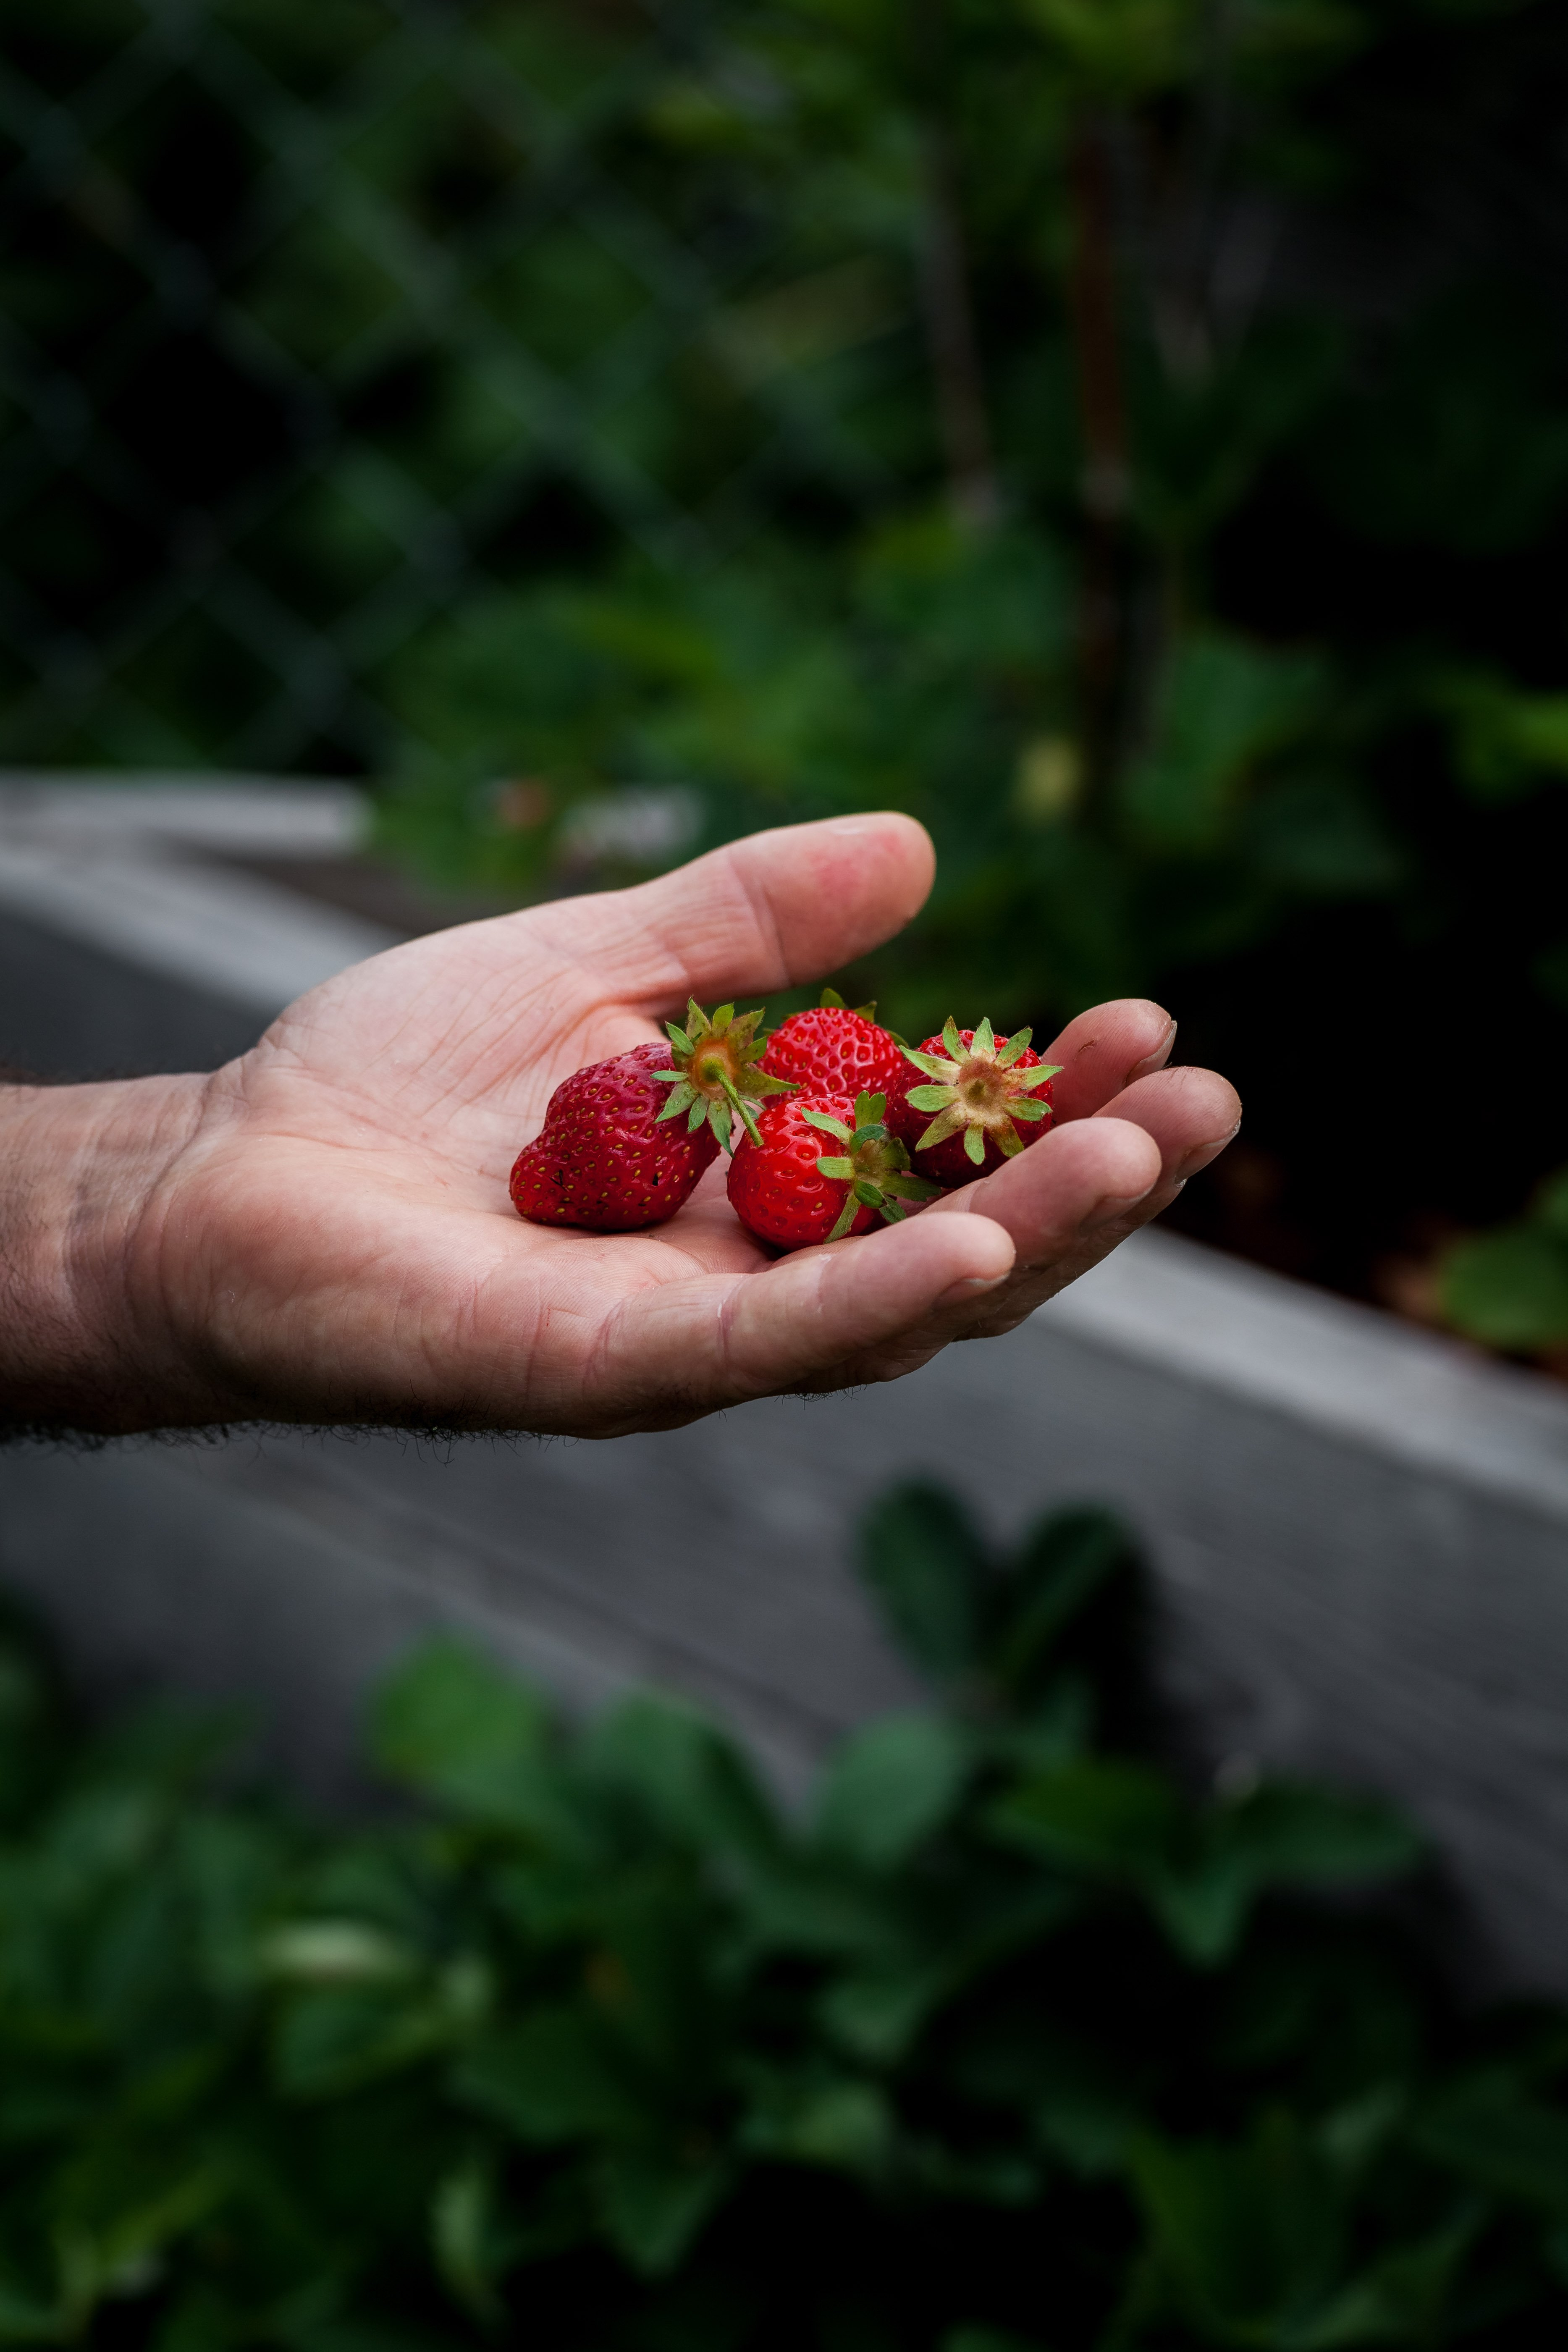 a head on image of a male hand holding strawberries.